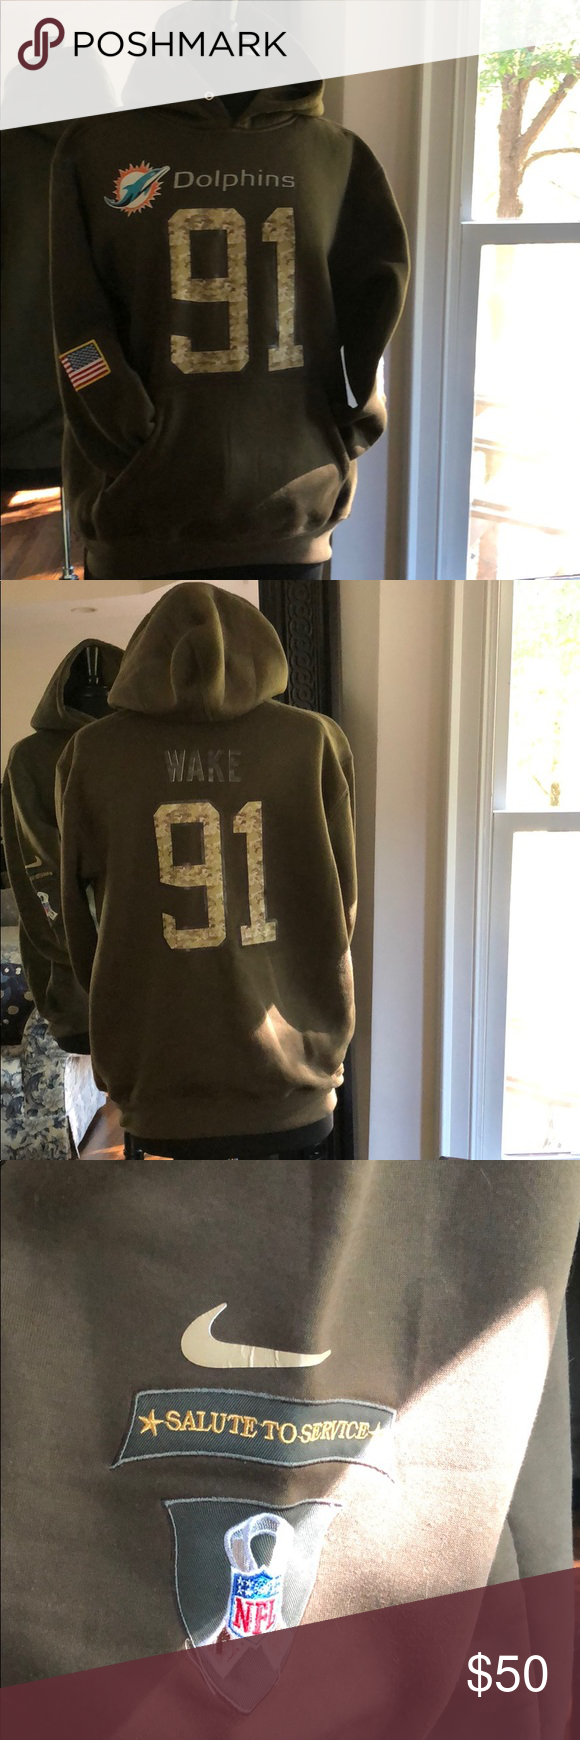 Nike NFL Miami Salute to Service Pullover Pullover hoodie # 91 Wake Nike Shirts Sweatshirts & Hoodies #salutetoservice Nike NFL Miami Salute to Service Pullover Pullover hoodie # 91 Wake Nike Shirts Sweatshirts & Hoodies #salutetoservice